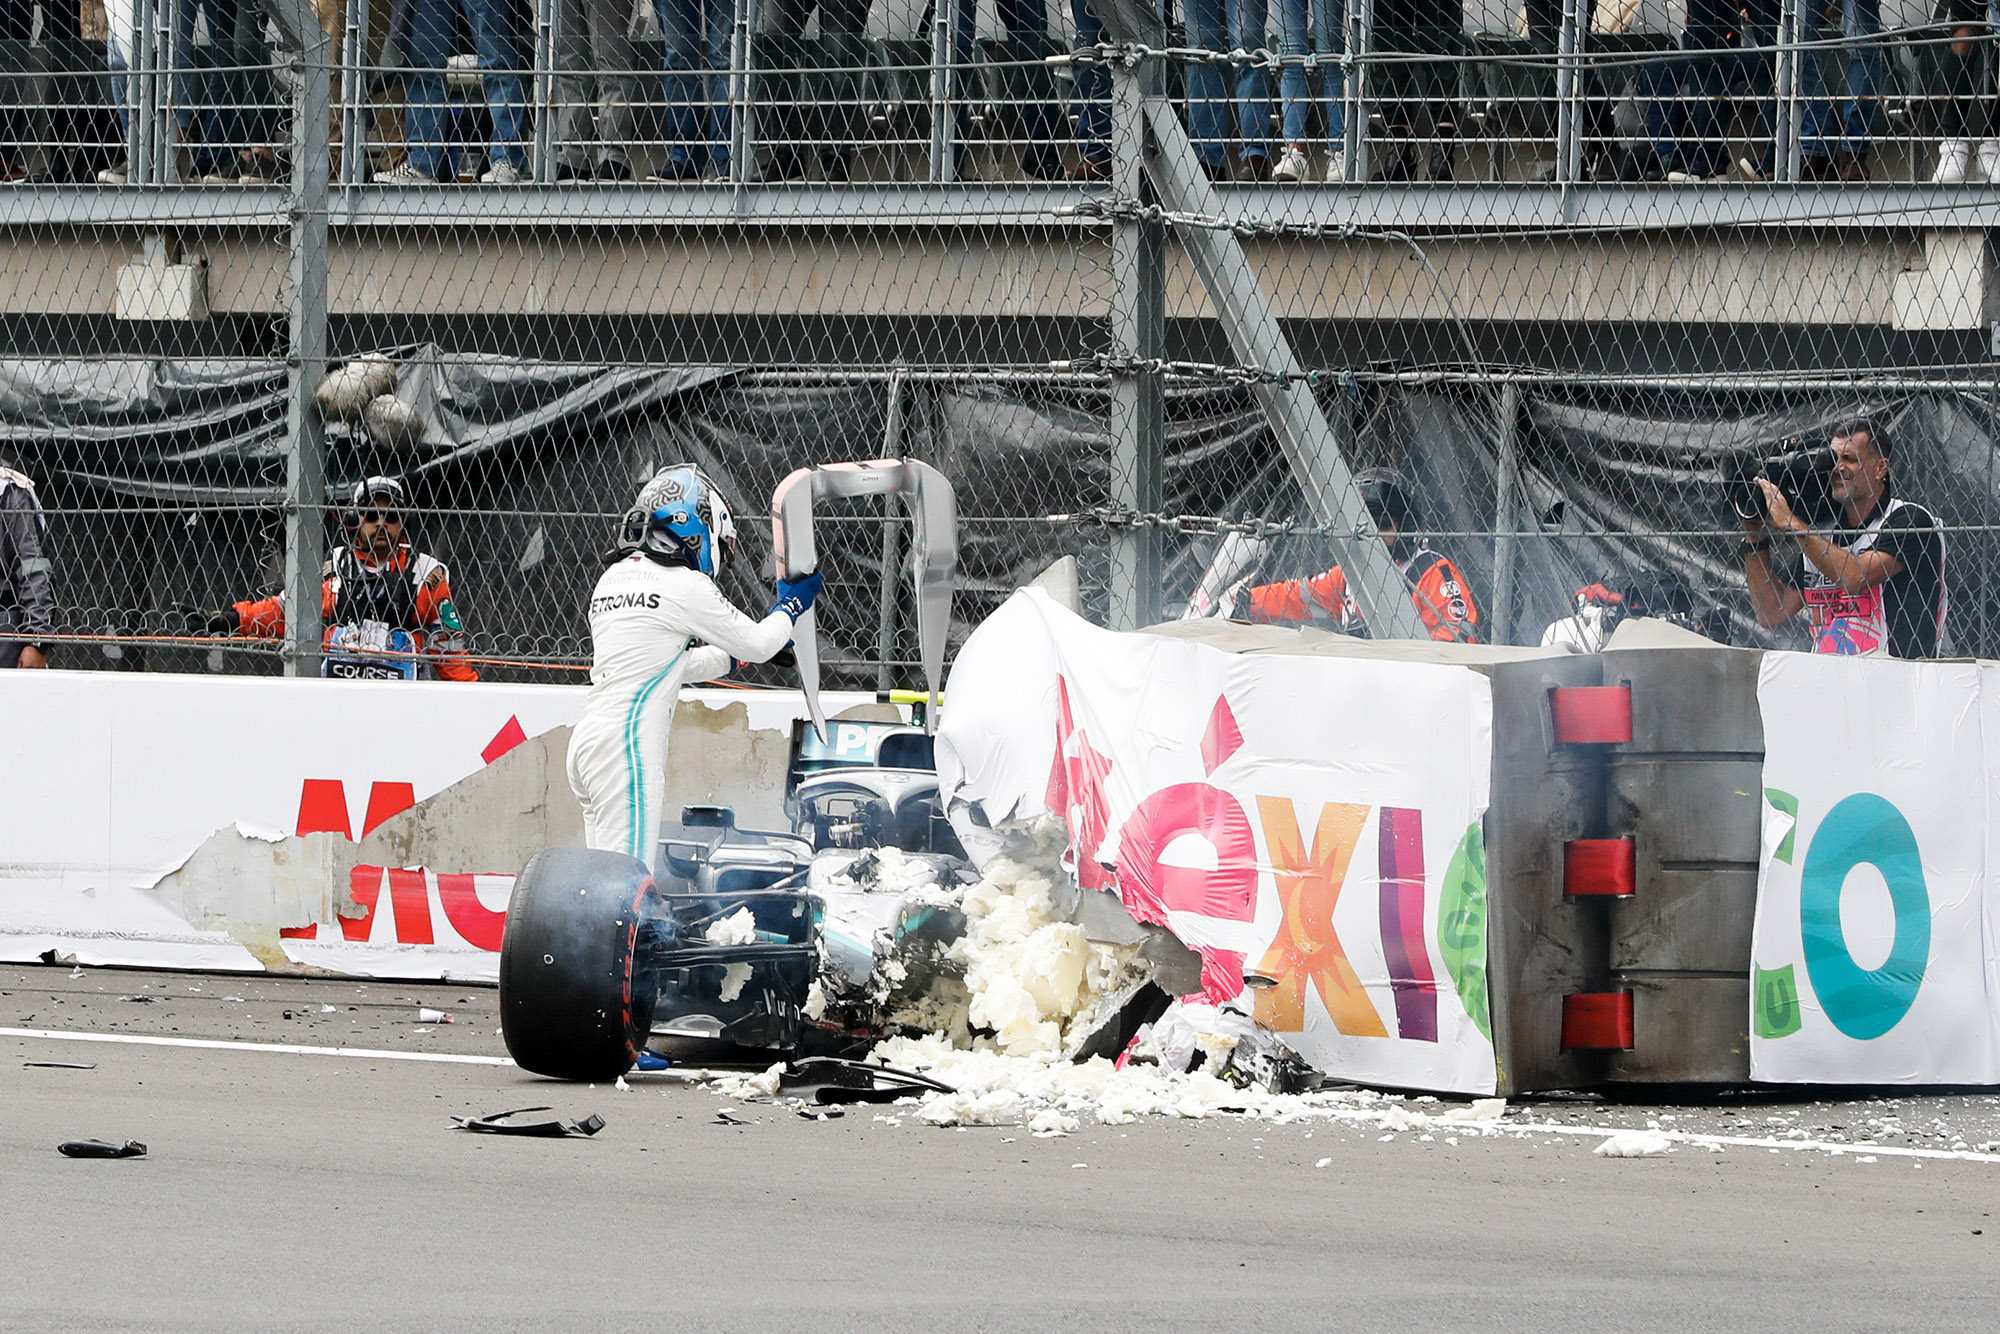 Valtteri Bottas's destroyed car in the barrier during qualifying for the 2019 F1 Mexican Grand Prix